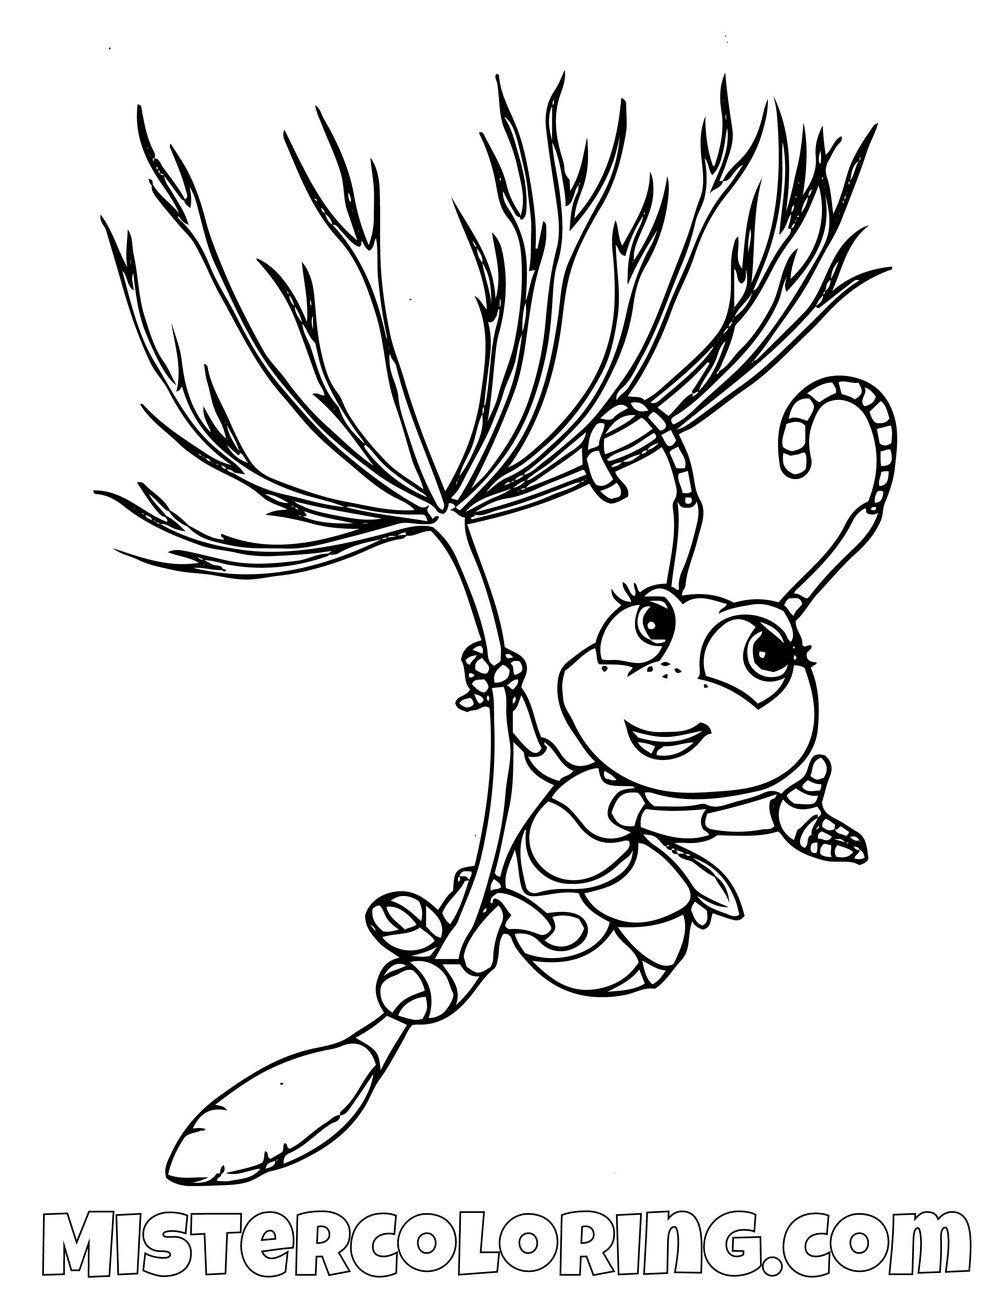 Dot Flying A Bugs Life Coloring Page Unicorn Coloring Pages Coloring Pages Coloring Pages For Kids